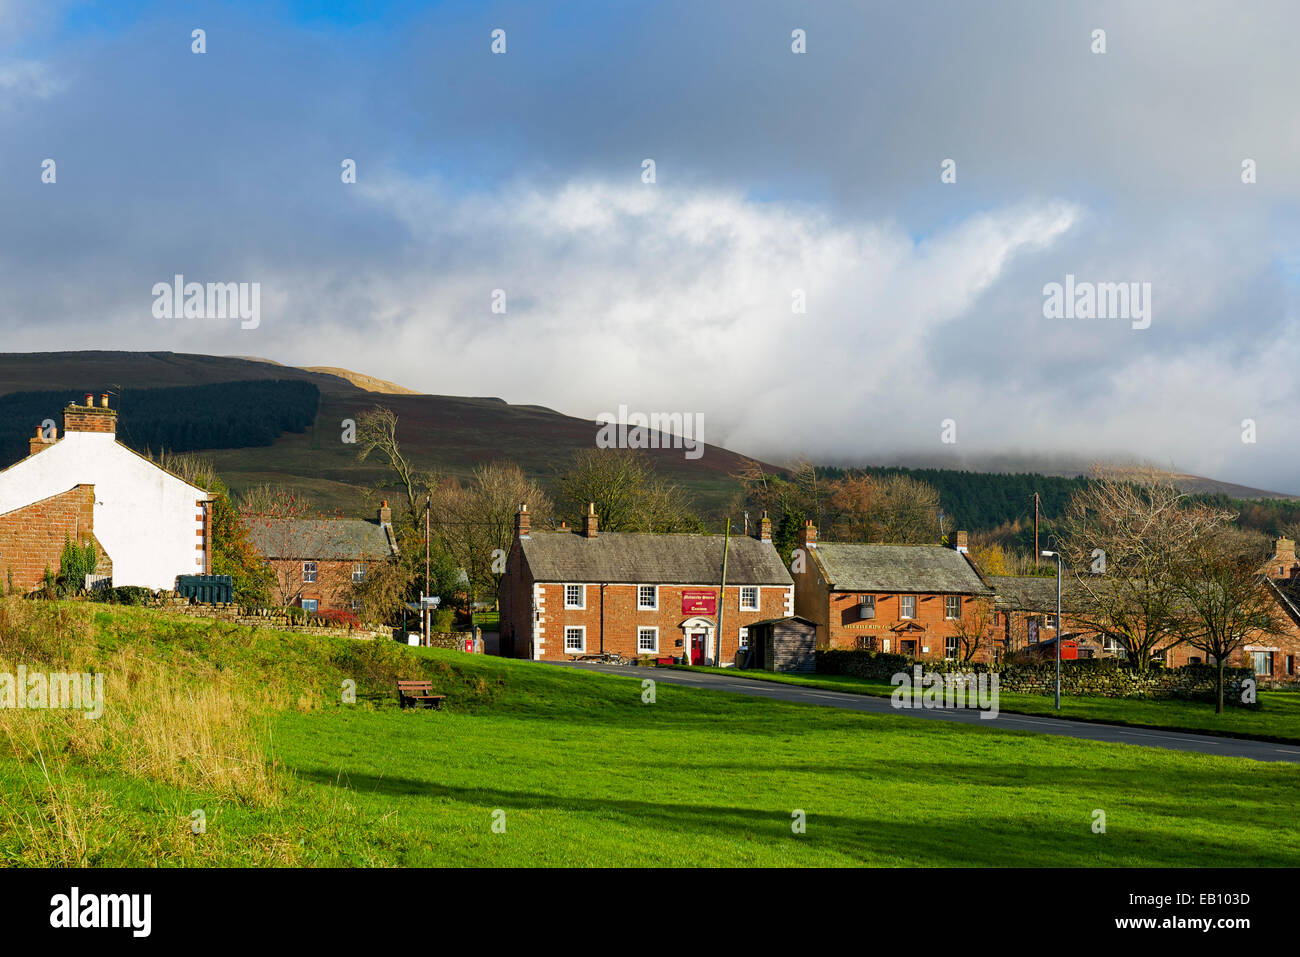 The village of Melmerby, Eden Valley, Cumbria, England UK - Stock Image